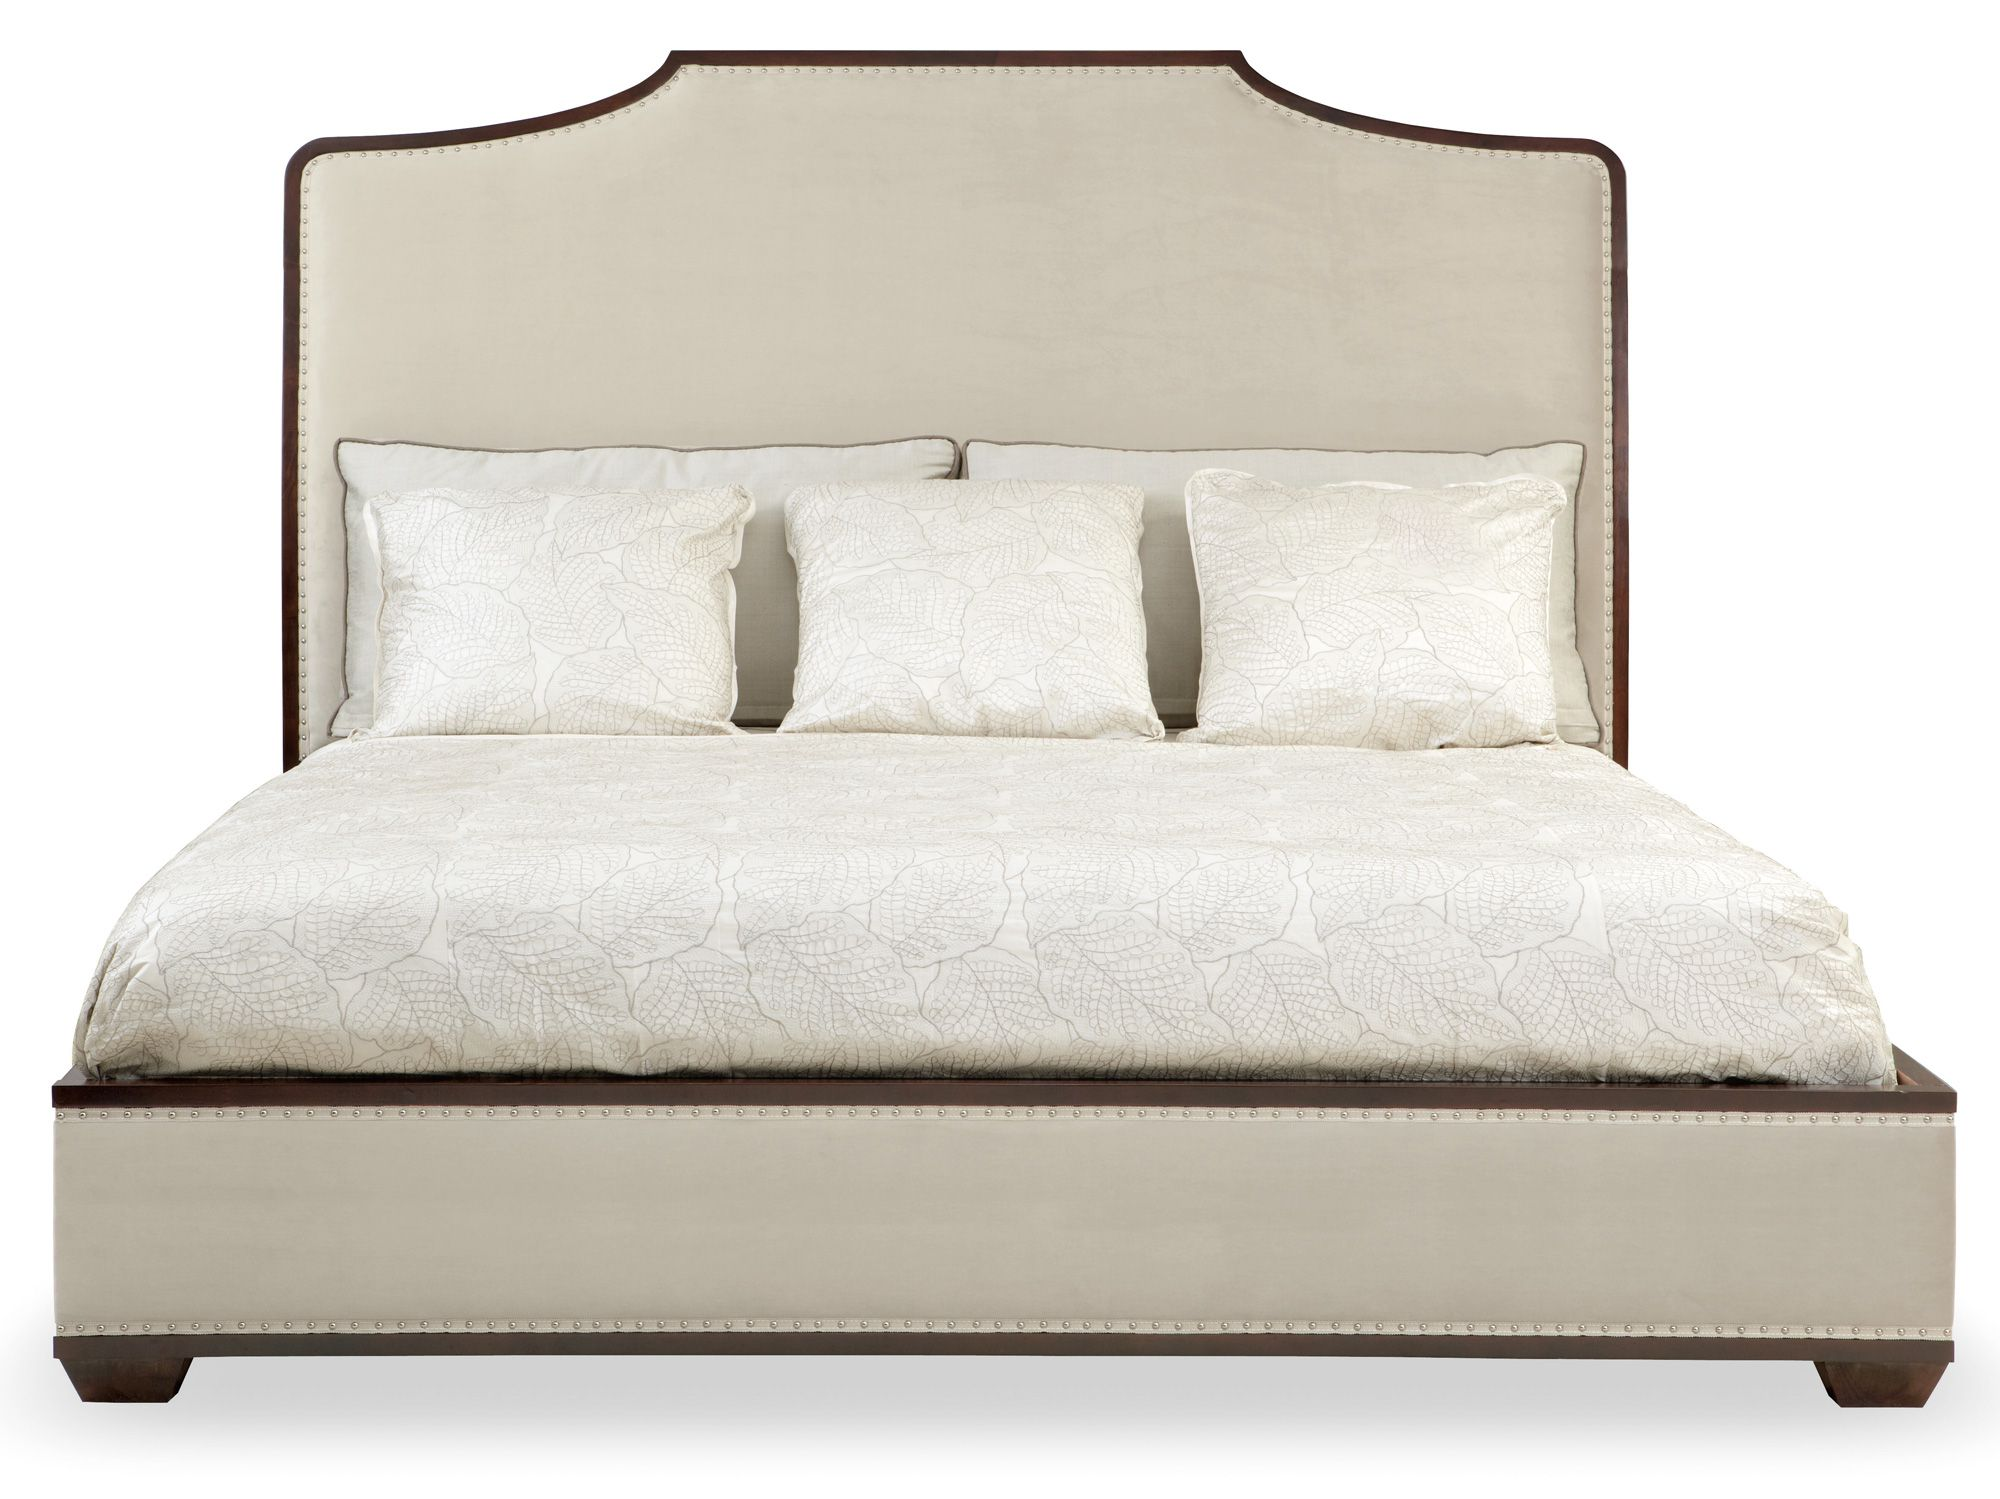 Super Bernhardt Upholstered Platform Bed Combo Of Wood And Download Free Architecture Designs Crovemadebymaigaardcom